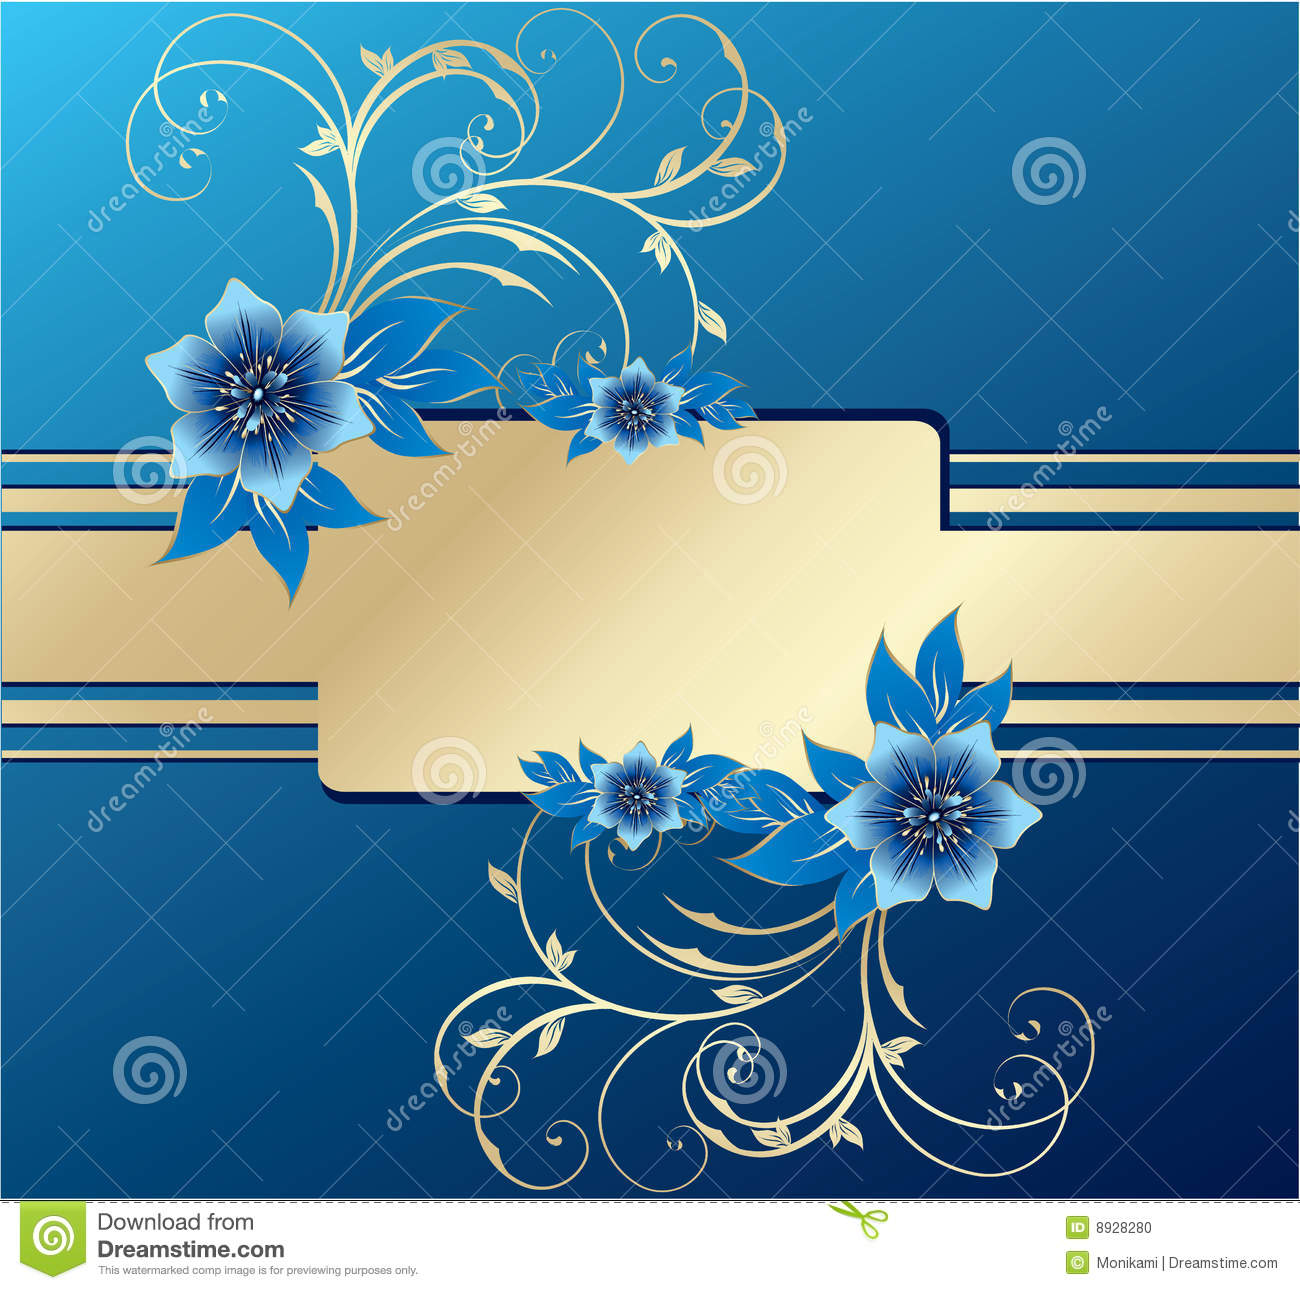 Stylish blue and gold greeting cards stock vector illustration of stylish greeting cards with floral elements stock illustration m4hsunfo